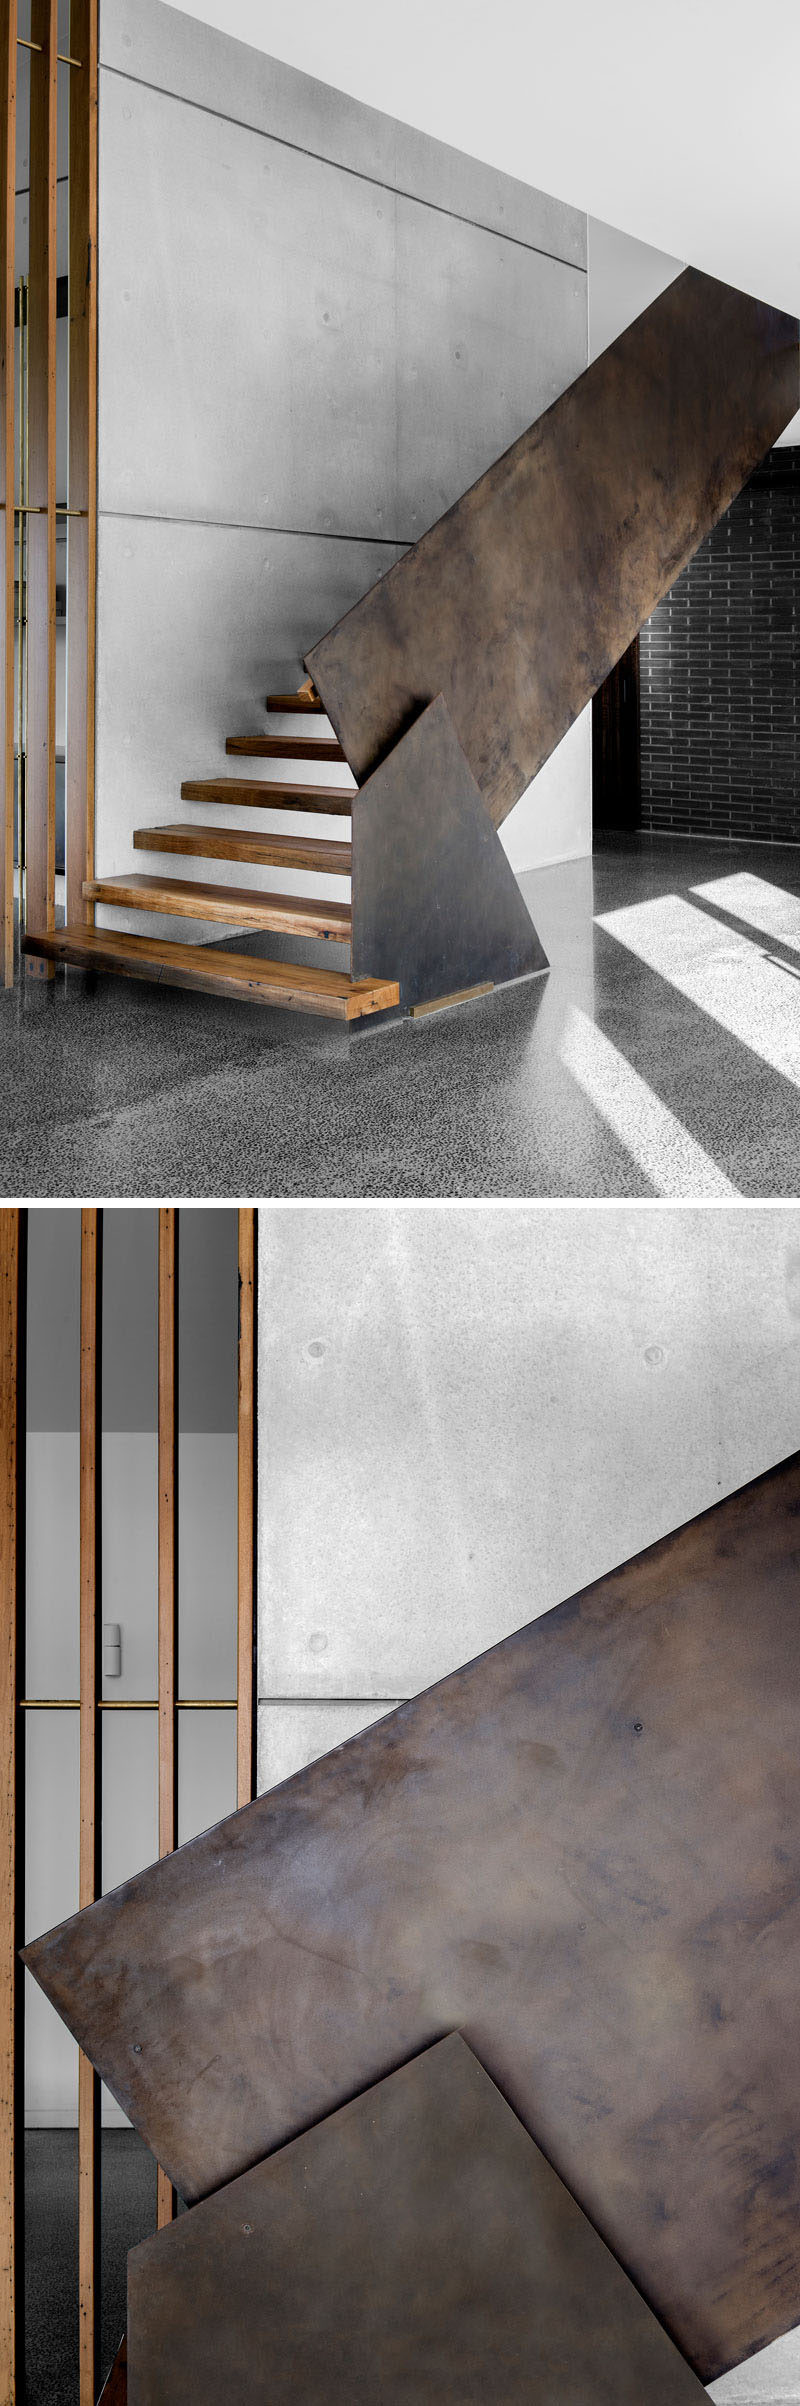 An industrial modern steel and wood staircase that leads to the second floor of this home. #Staircase #SteelHandrail #WoodStairs